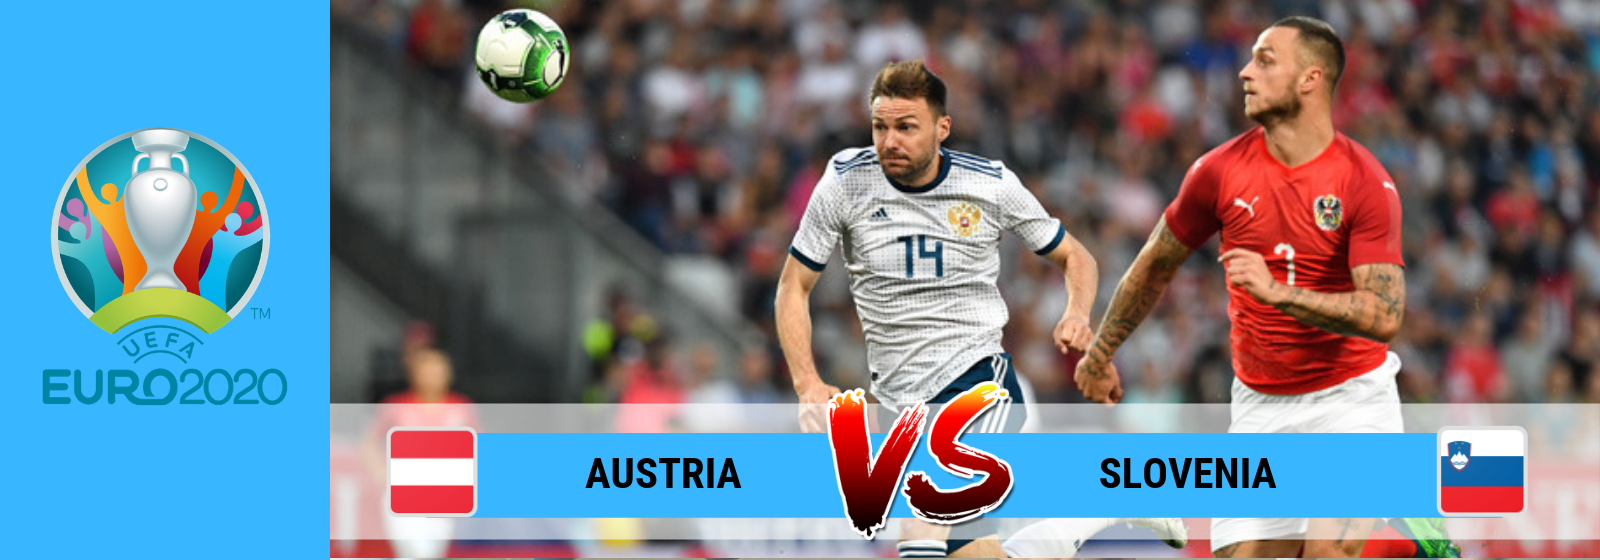 UEFA EUro 2020 Austria Vs Slovenia Asian Connect